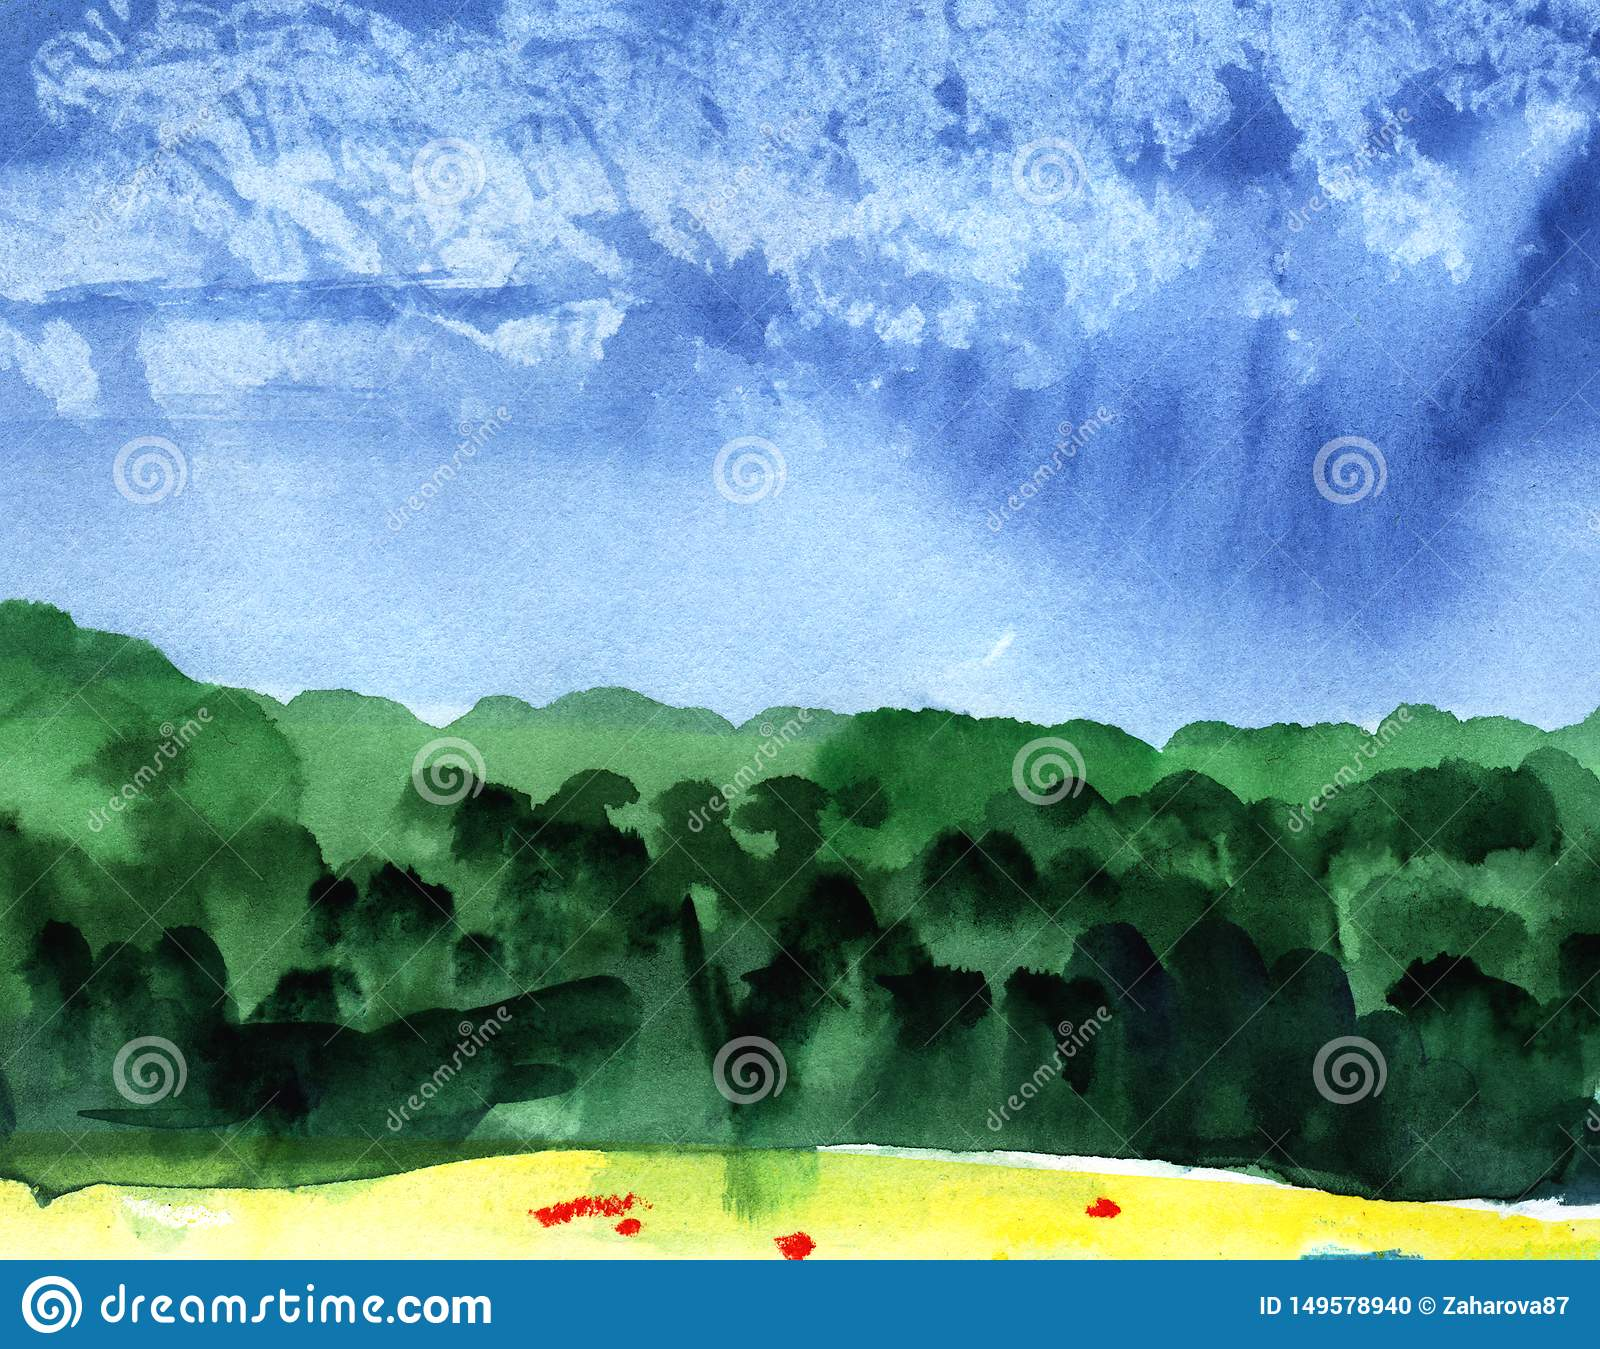 Abstract watercolor background. Blue sky on a sunny day with cumulus clouds. Silhouette of a green forest.